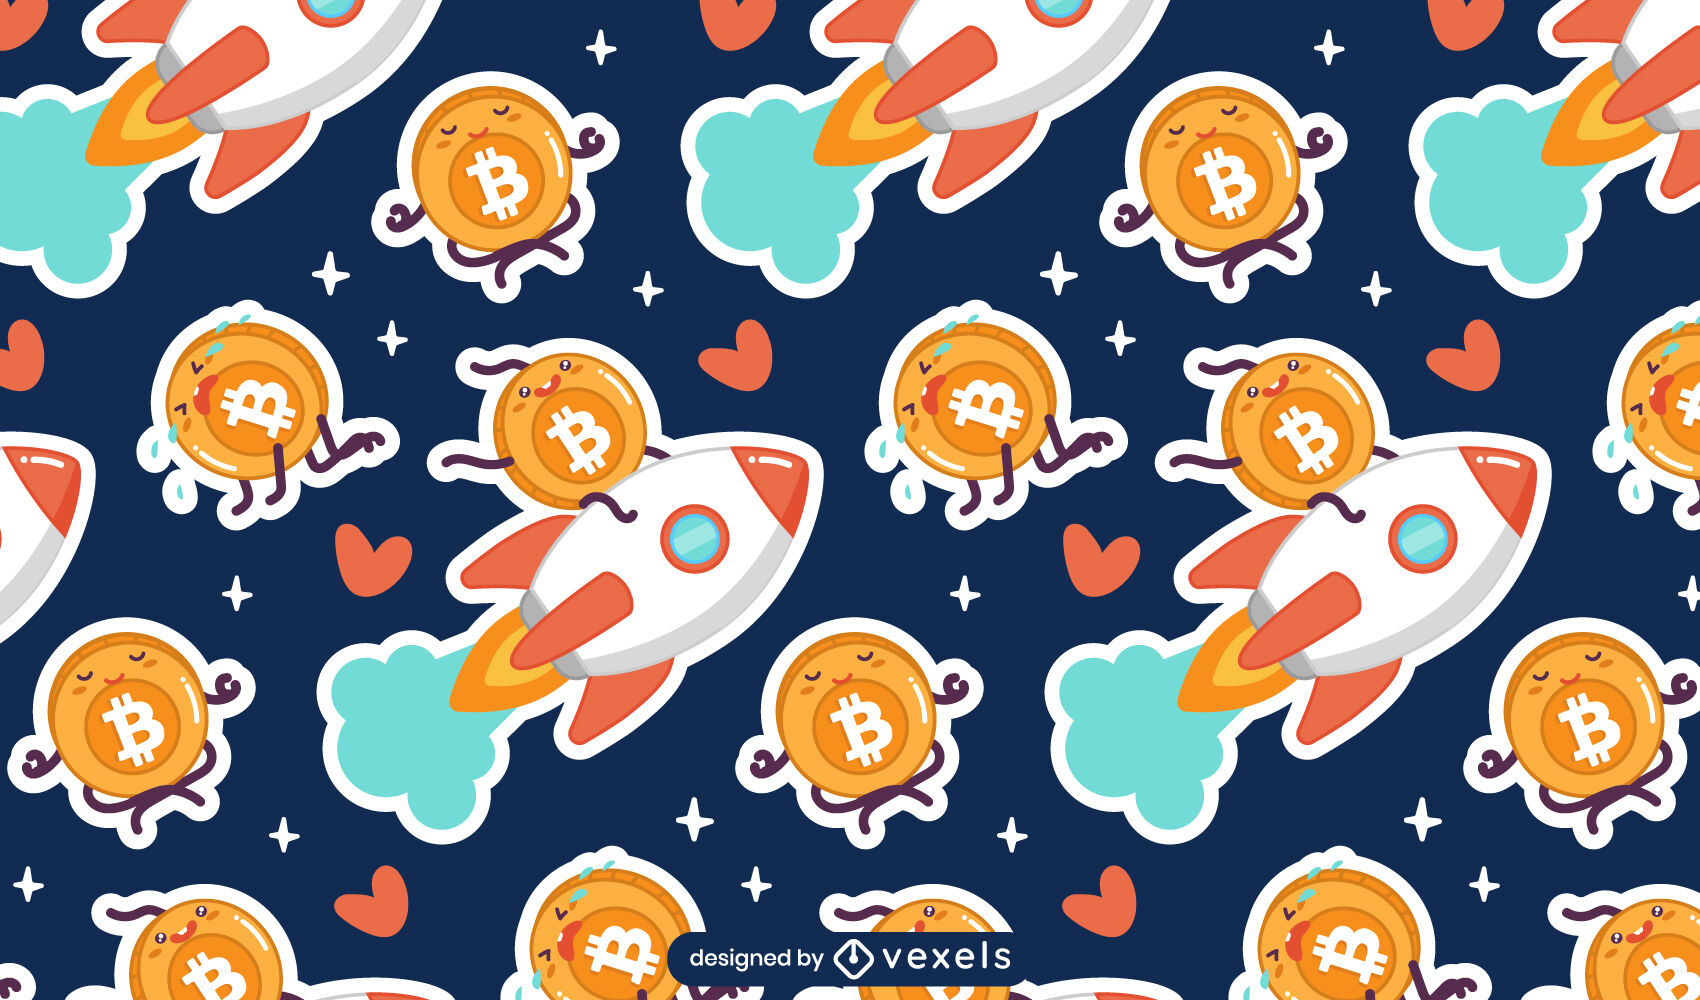 Cute bitcoin characters pattern